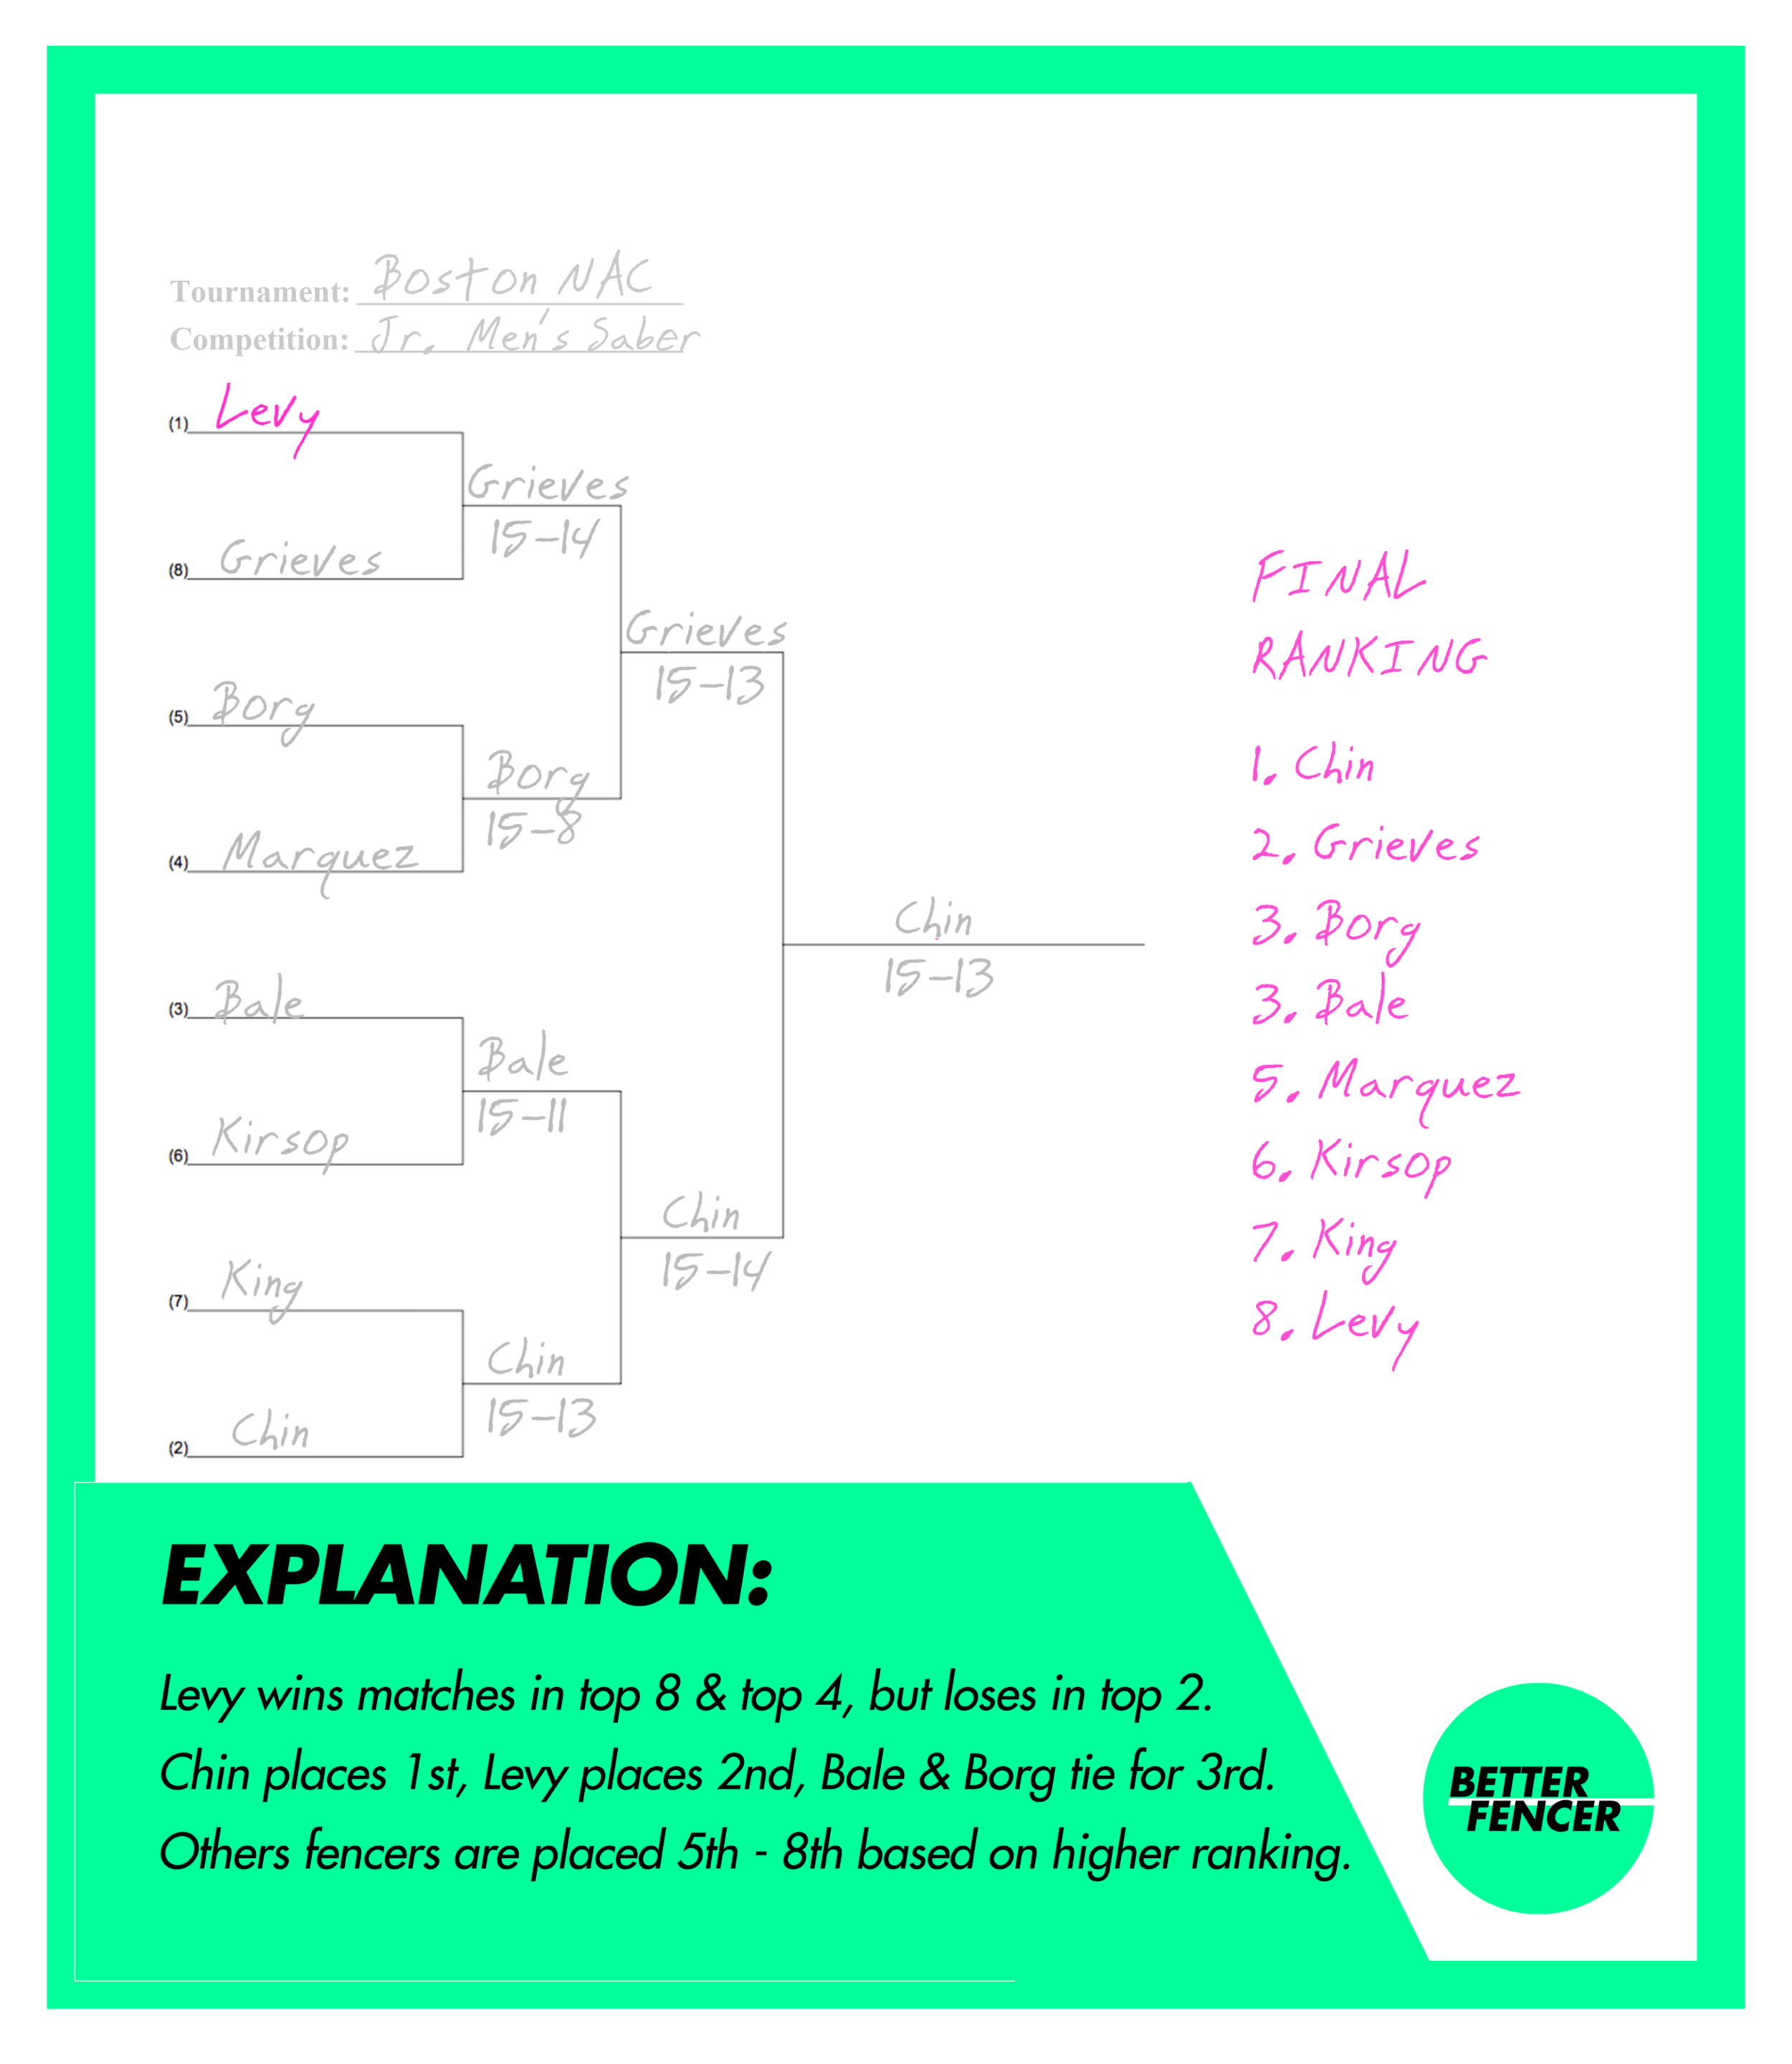 Fencing tableau that shows a completed bracket with final tournament placement for induvidual fencers